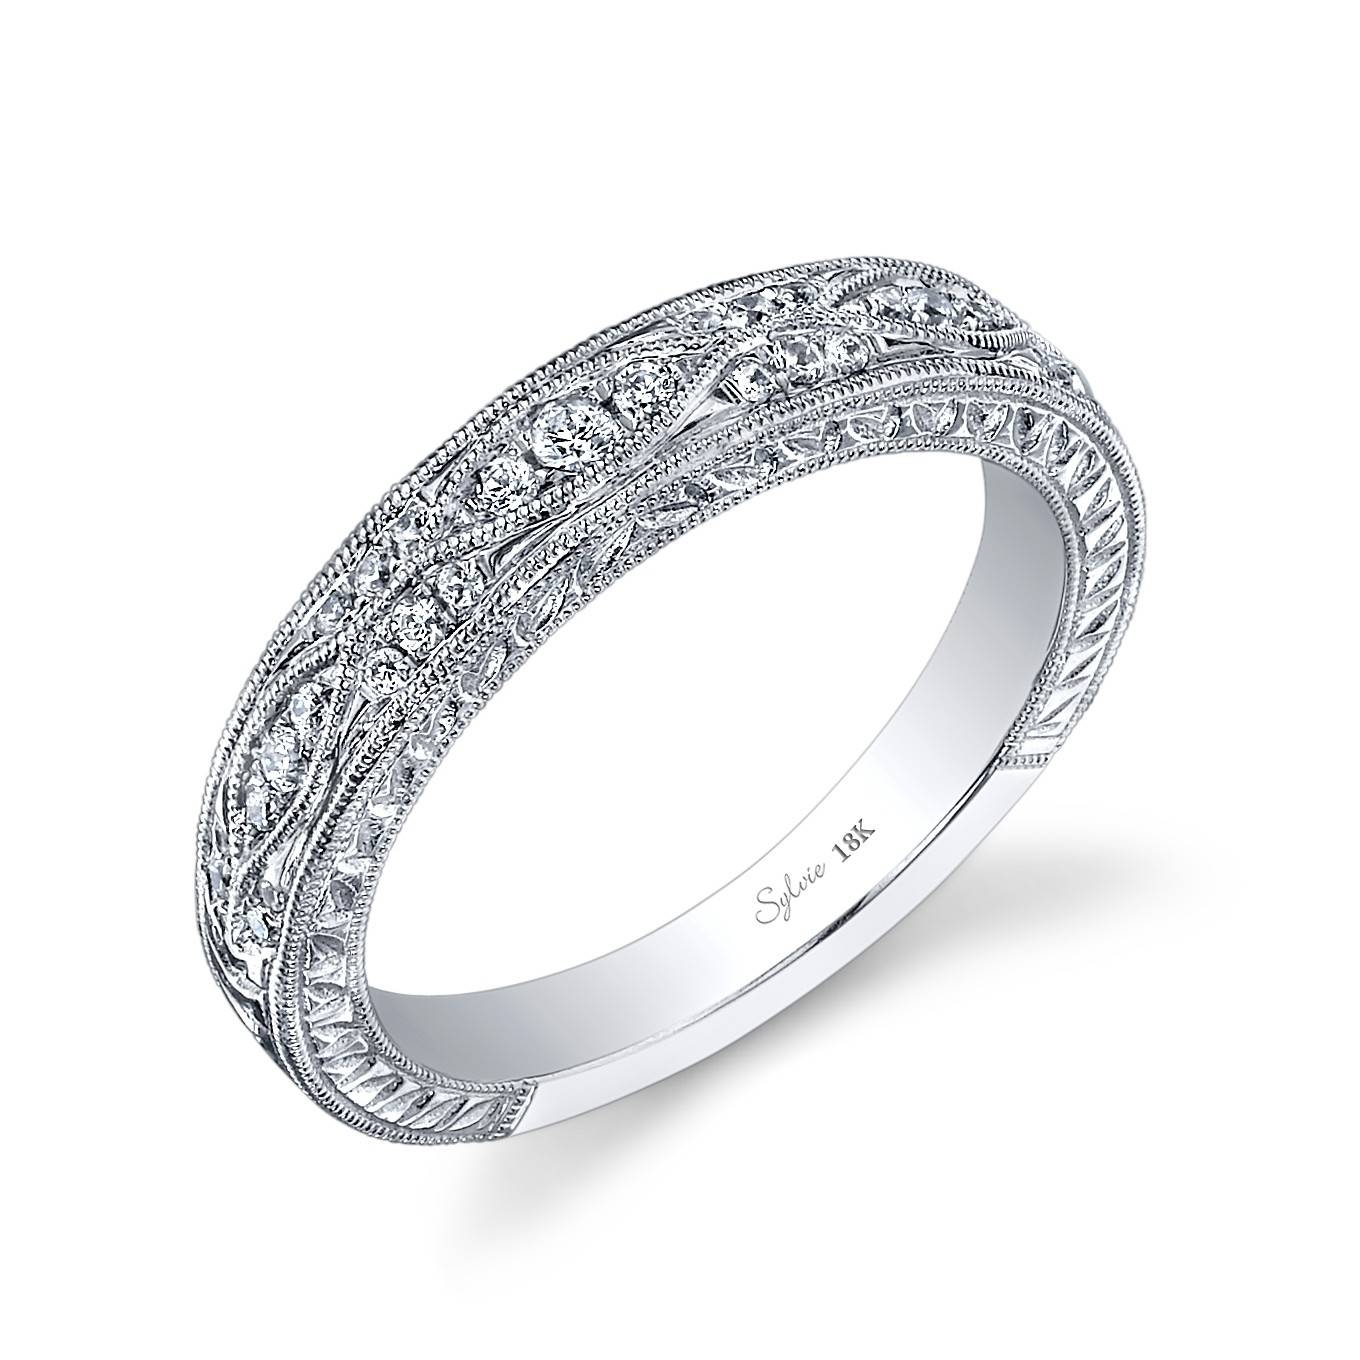 Wedding Rings : Engraved Wedding Band Designs Engravable Wedding With Regard To Engrave Wedding Bands (Gallery 7 of 15)